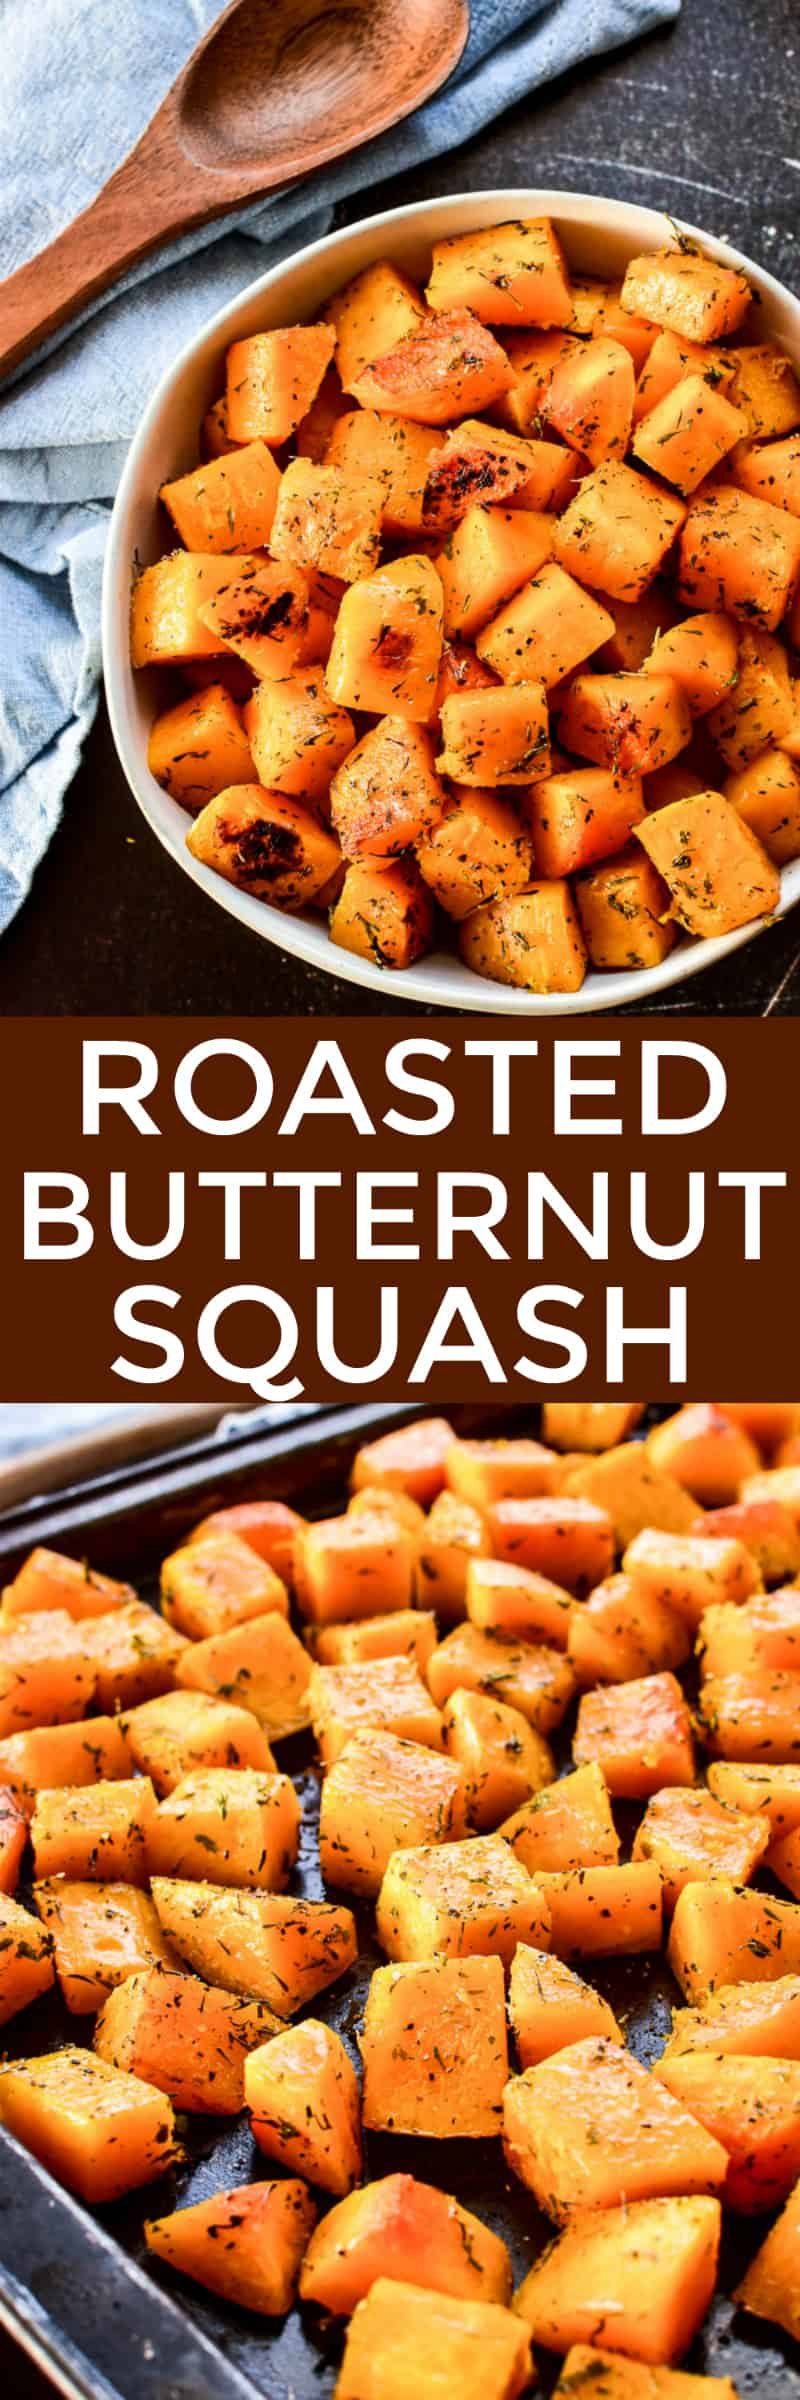 Collage image of Roasted Butternut Squash